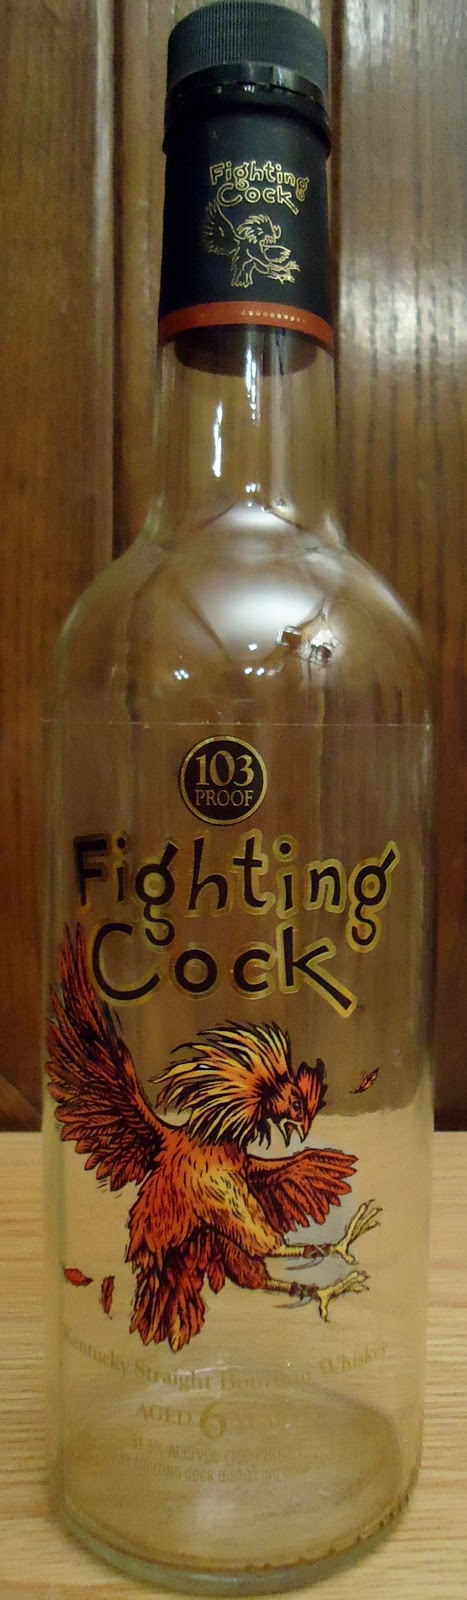 Cock shirt t fighting whiskey